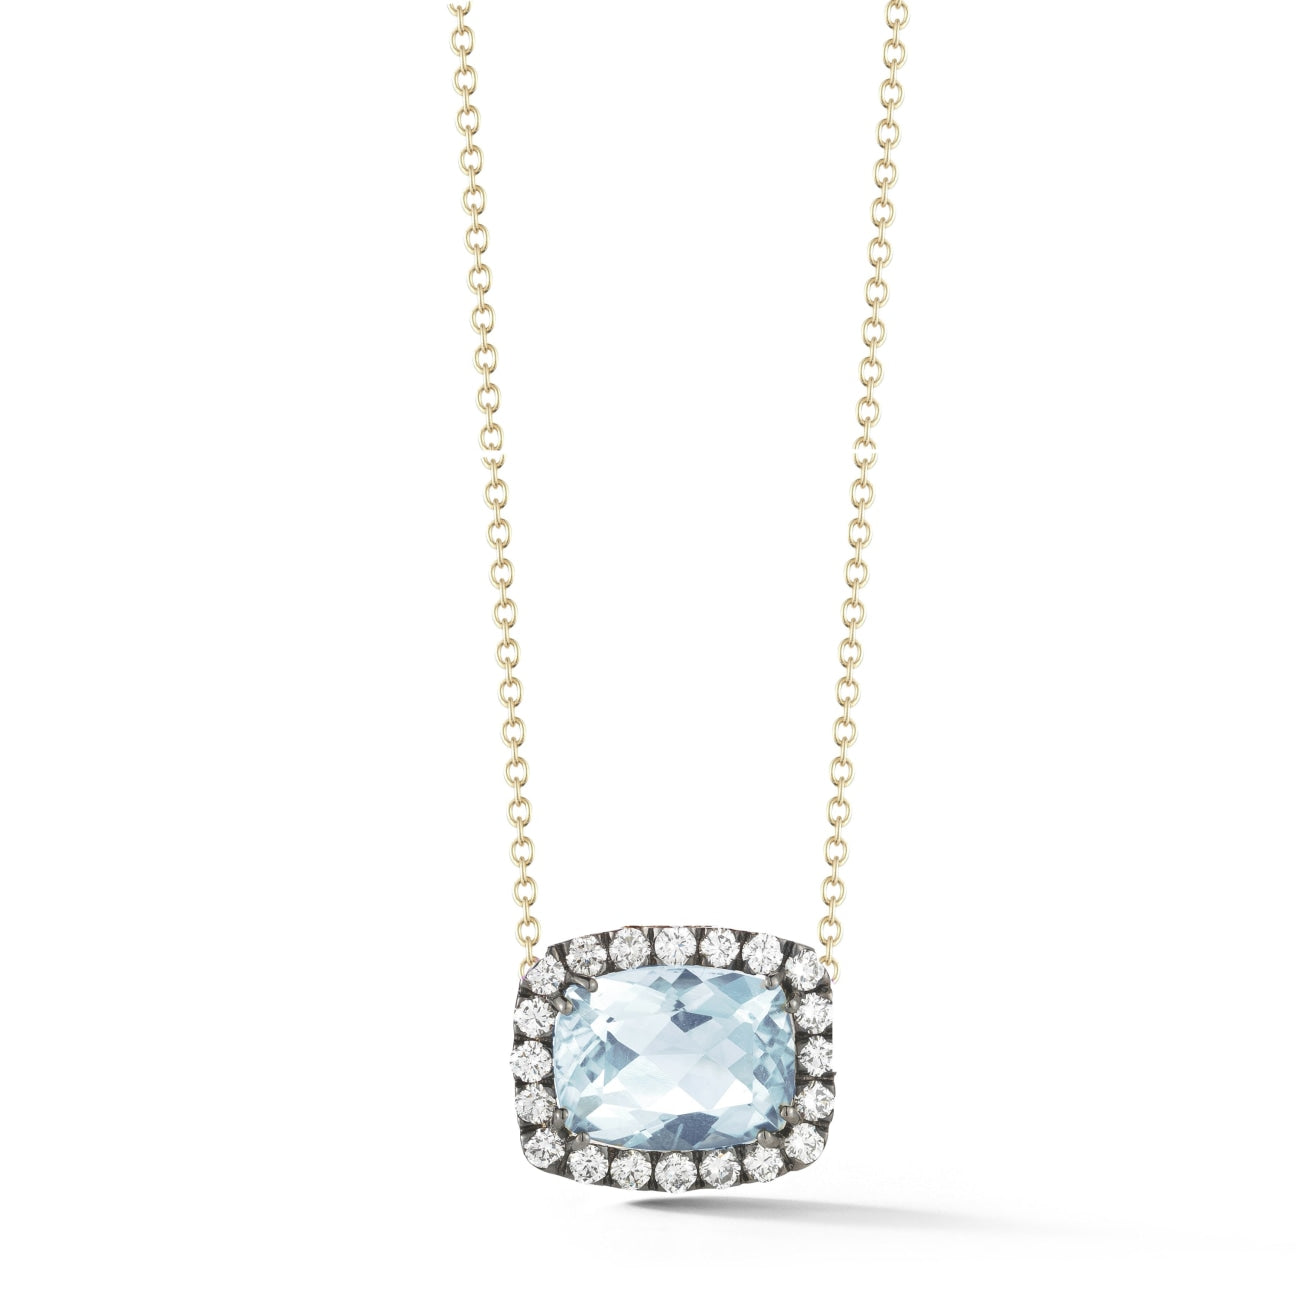 A & Furst Jewelry - Black gold pendant blue topaz & diamond | Manfredi Jewels